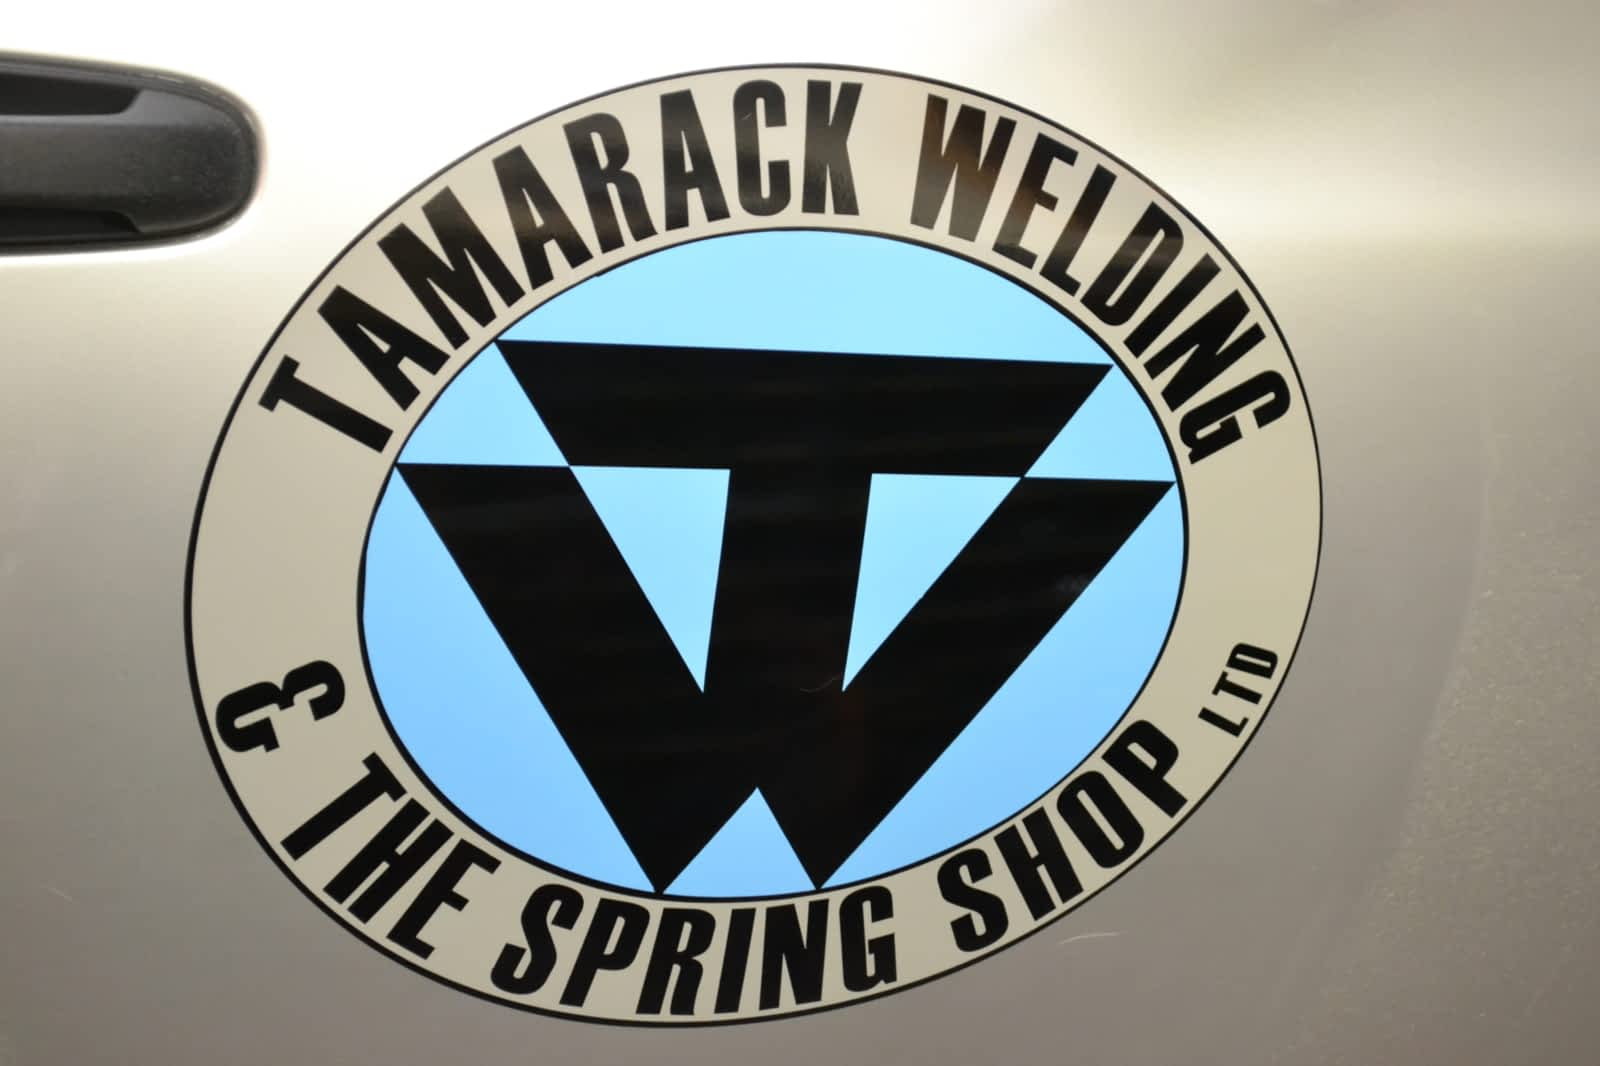 Tamarack Welding & The spring shop